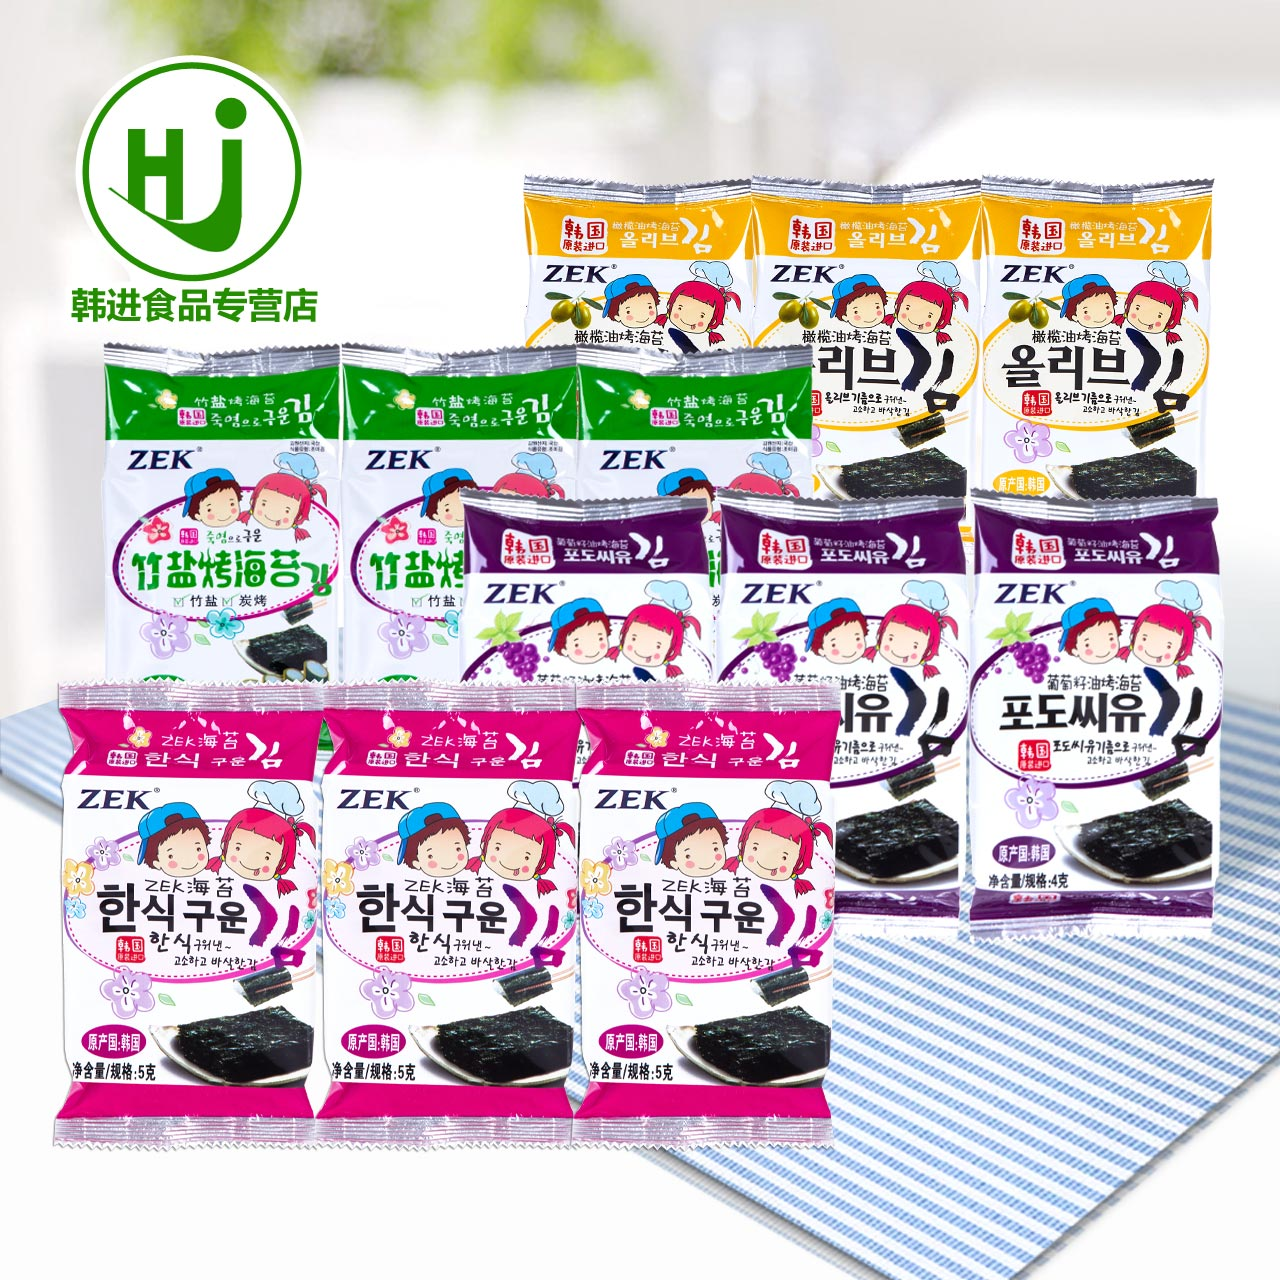 Free shipping korean imports zero food zek children ready kimbap toasted nori seaweed baby purple dish 4 big bag of snacks